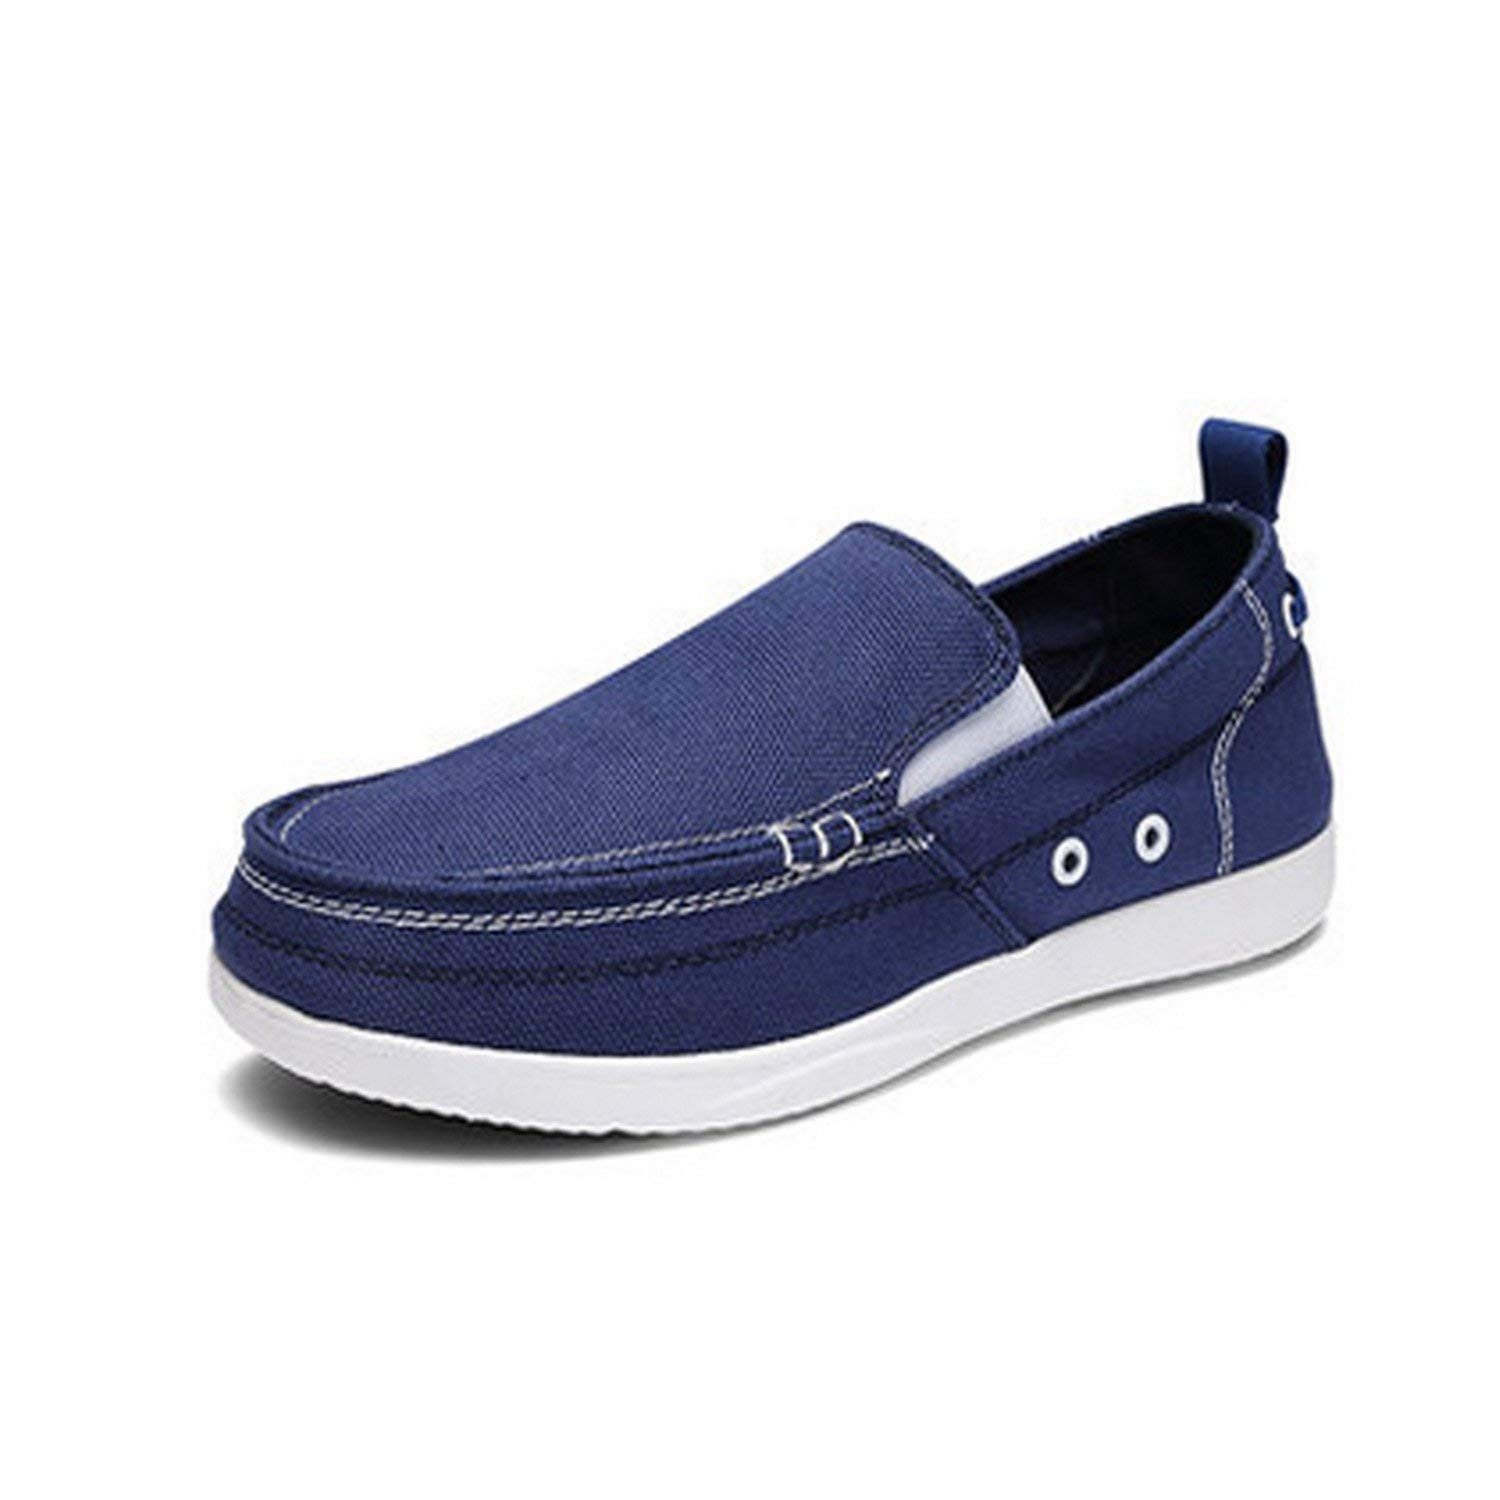 Bradleybla 2018 Spring Autumn Men Ultralight Breathable Casual Men Shoes Comfortable Loafers Lazy Driving Shoes